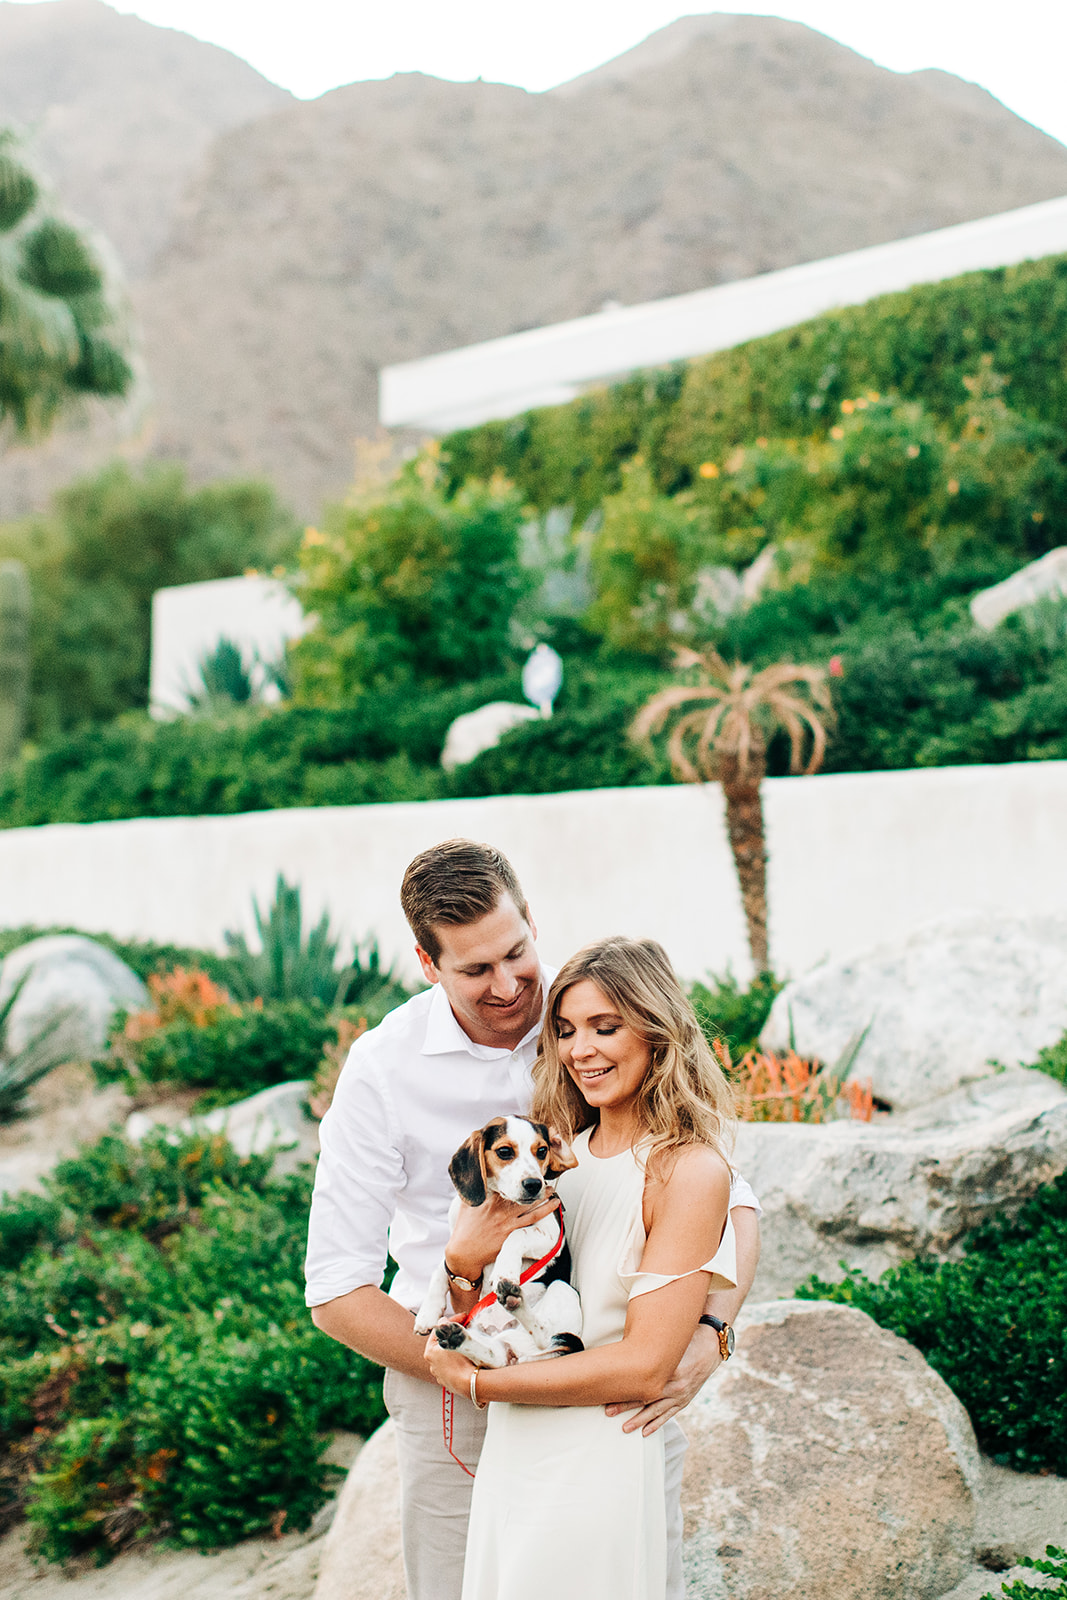 Paulina-Drew_Palm-Springs-Engagement-Photos_Clarisse-Rae_Southern-California-Wedding-Photographer-64